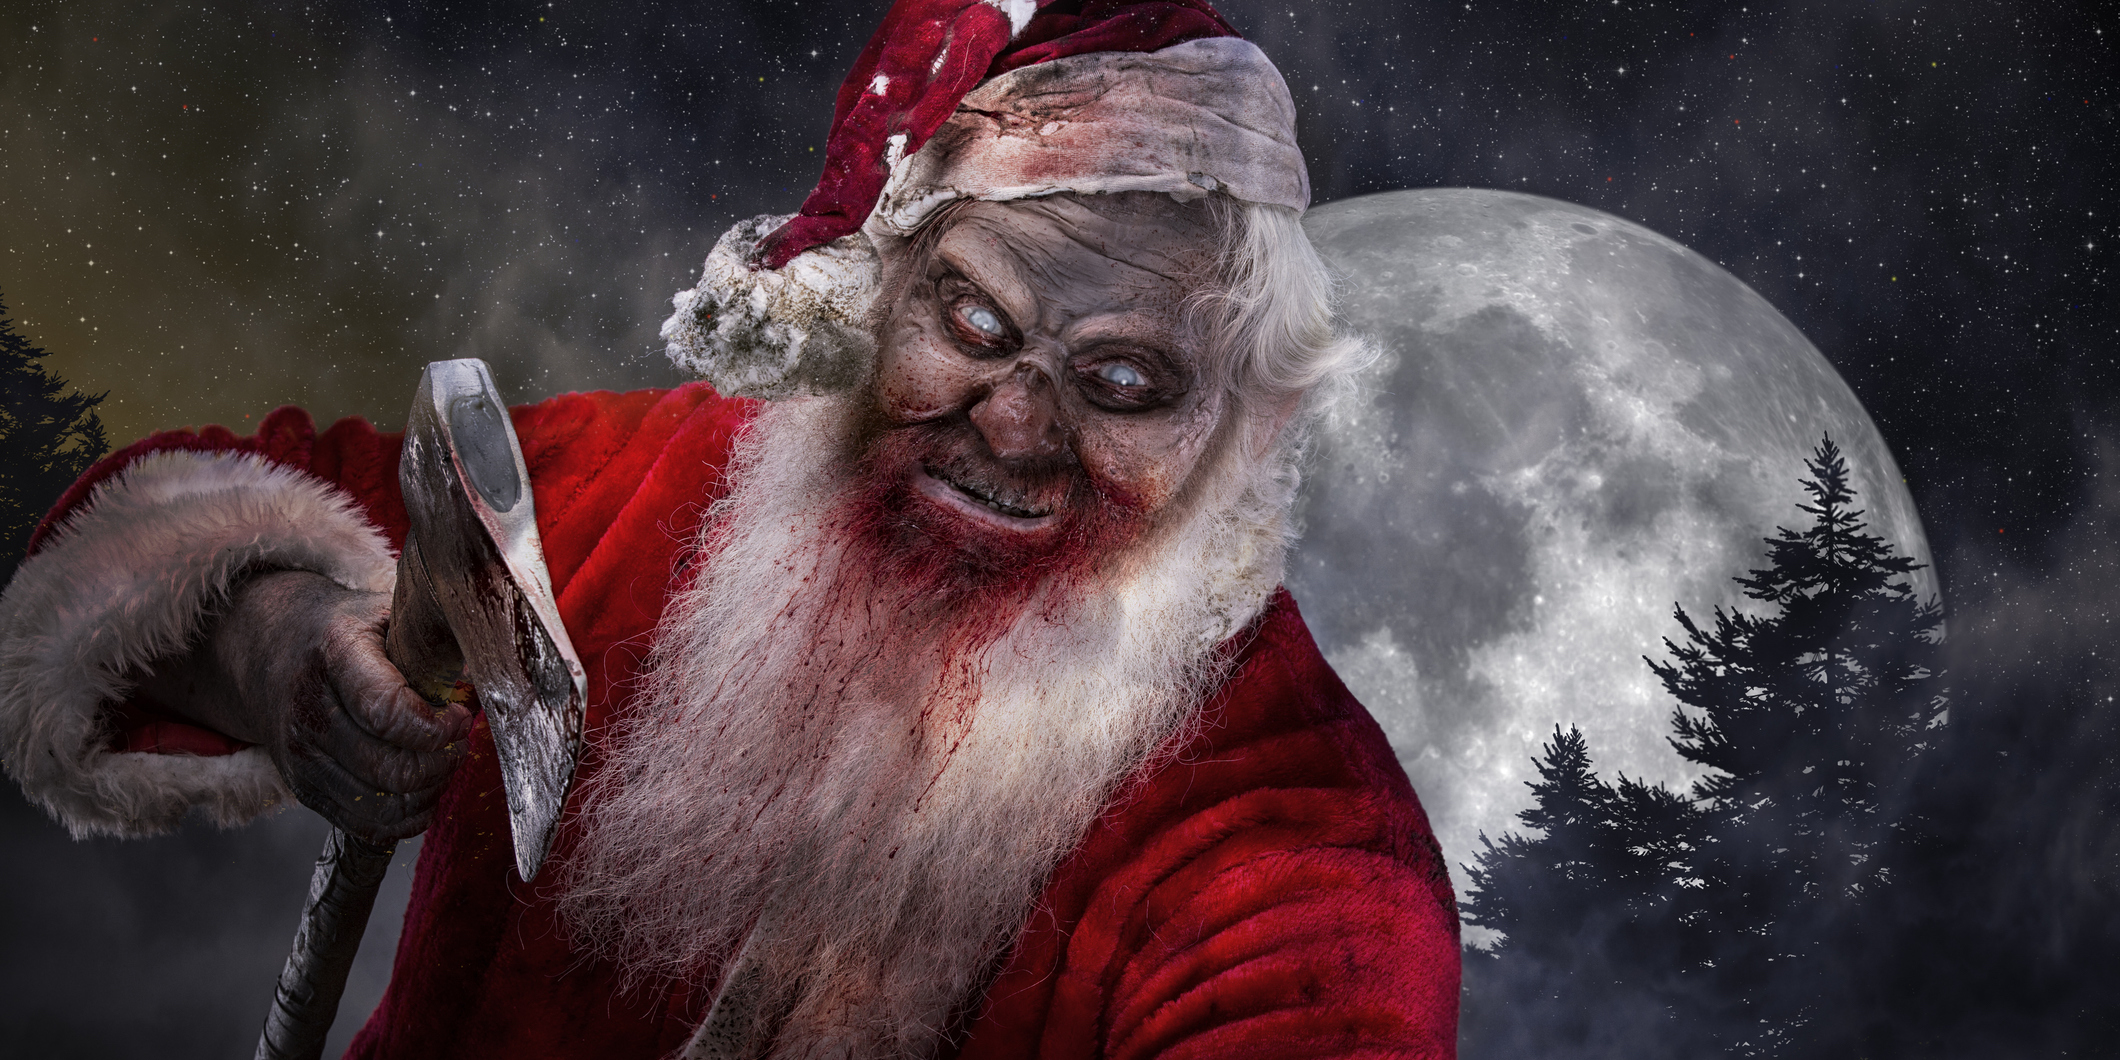 These 20 Terrifying Christmas Monsters Will Haunt Your Holidays